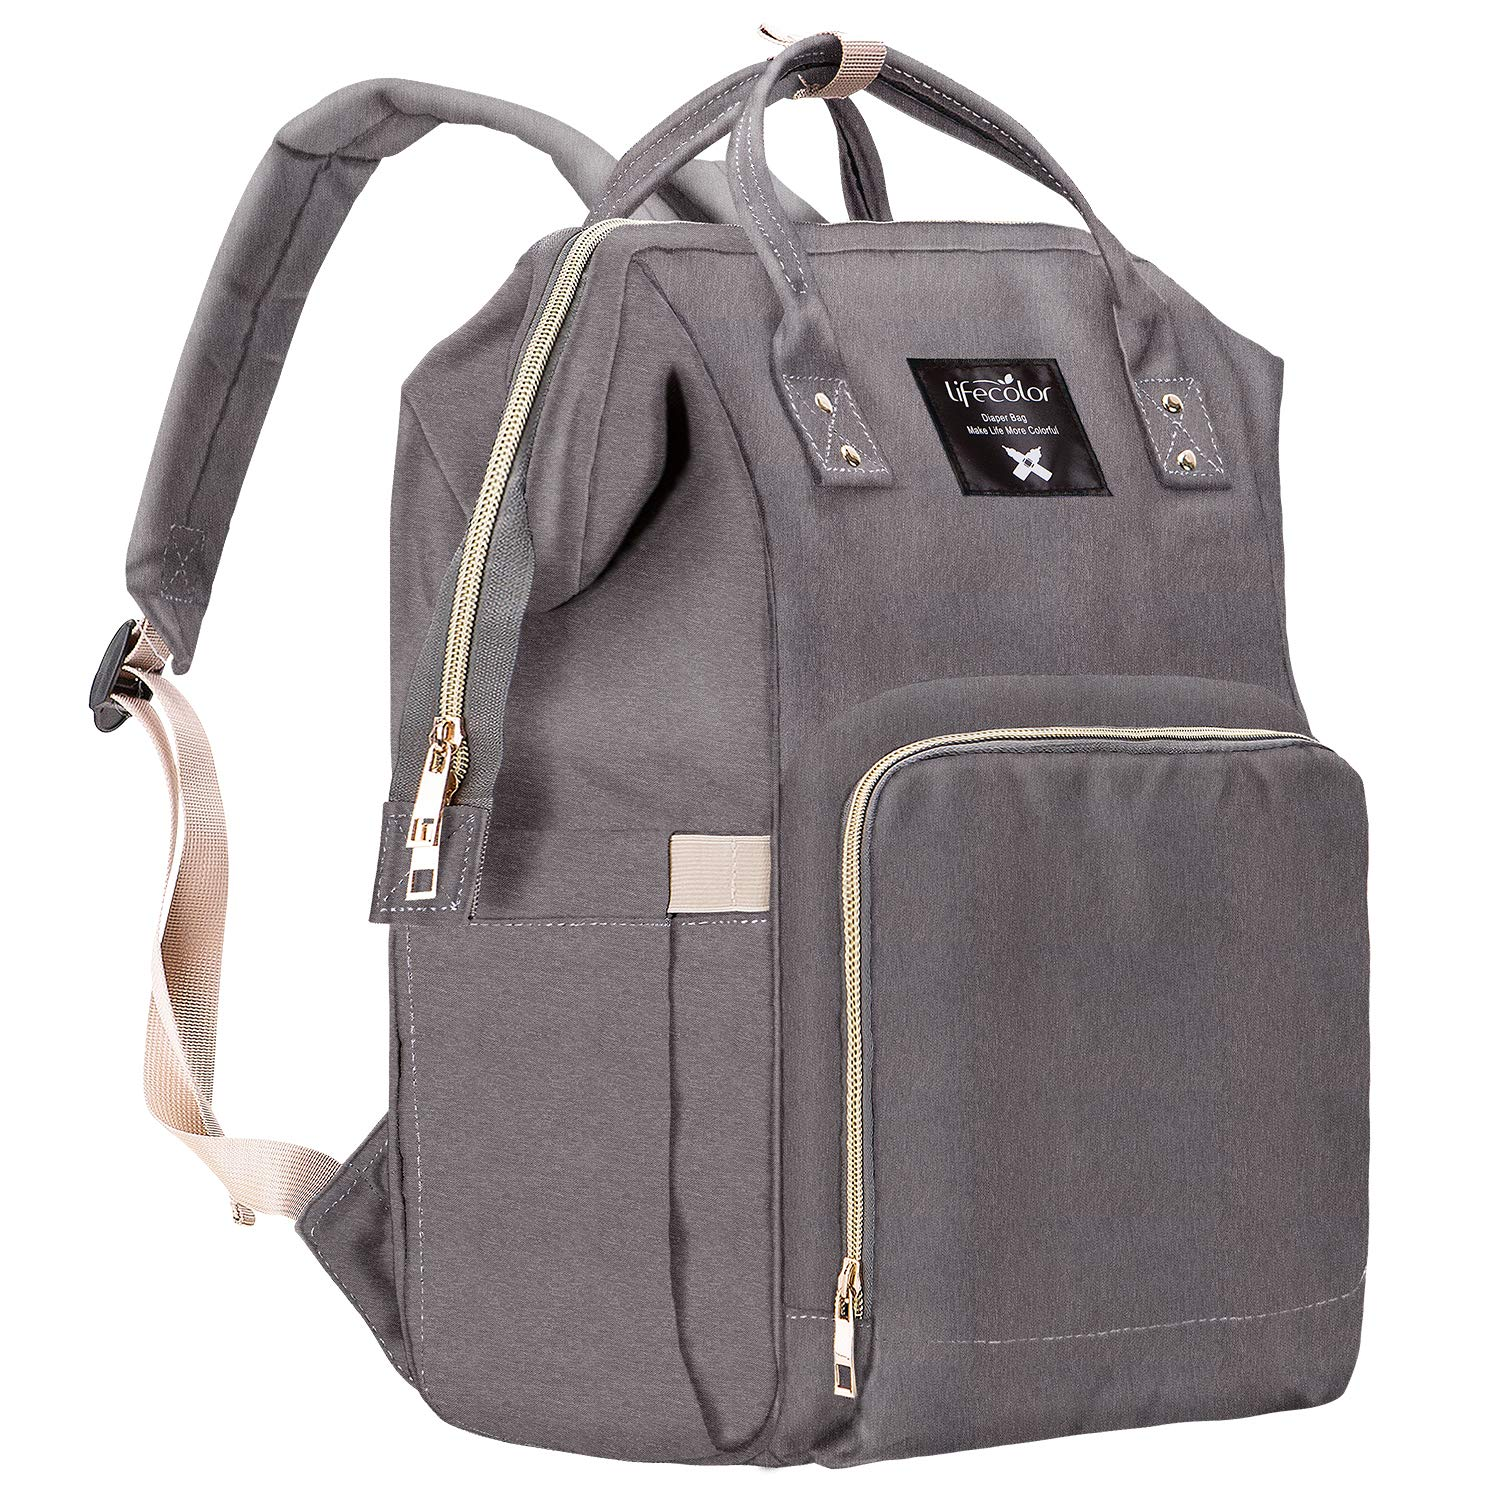 d2e6945d811e Lifecolor Diaper Bag Multi-functional Nappy Bags Waterproof Travel Mom  Backpack for Baby Care